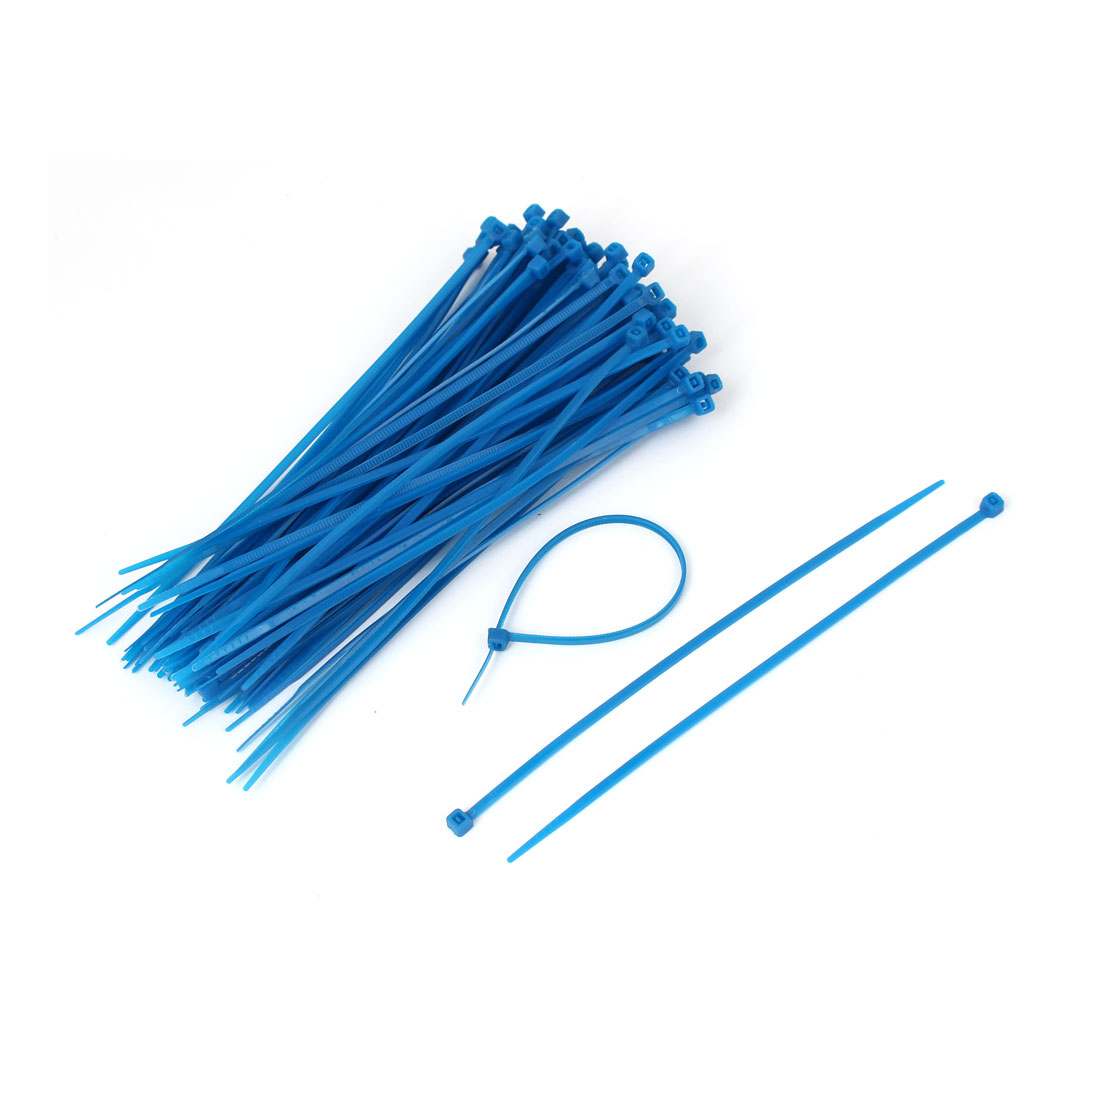 Network Cable Cord Wire Zip Ties Straps Blue 3mm Width 100 Pcs